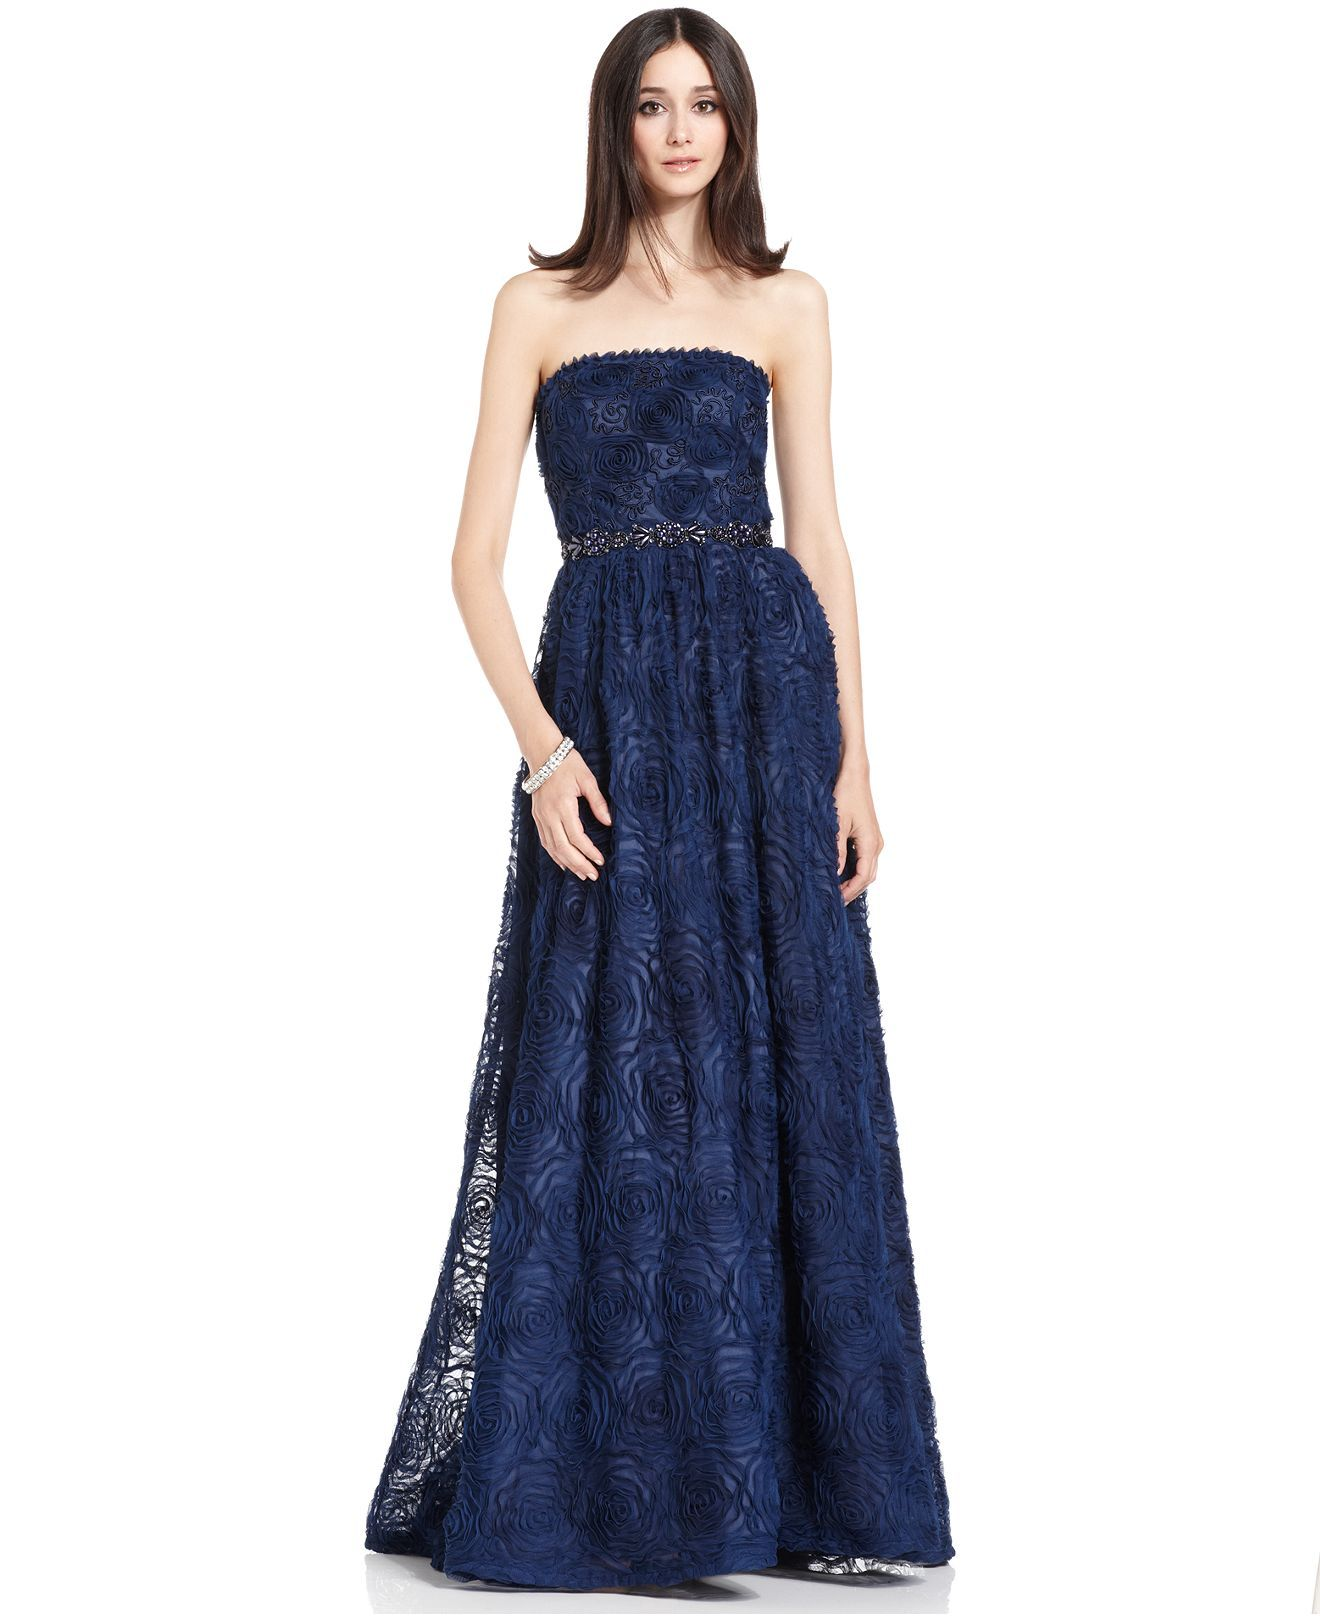 Papell cap sleeve beaded sequined gown dresses women macy s - Adrianna Papell Dress Strapless Beaded Ball Gown Womens Wedding Dresses Macy S